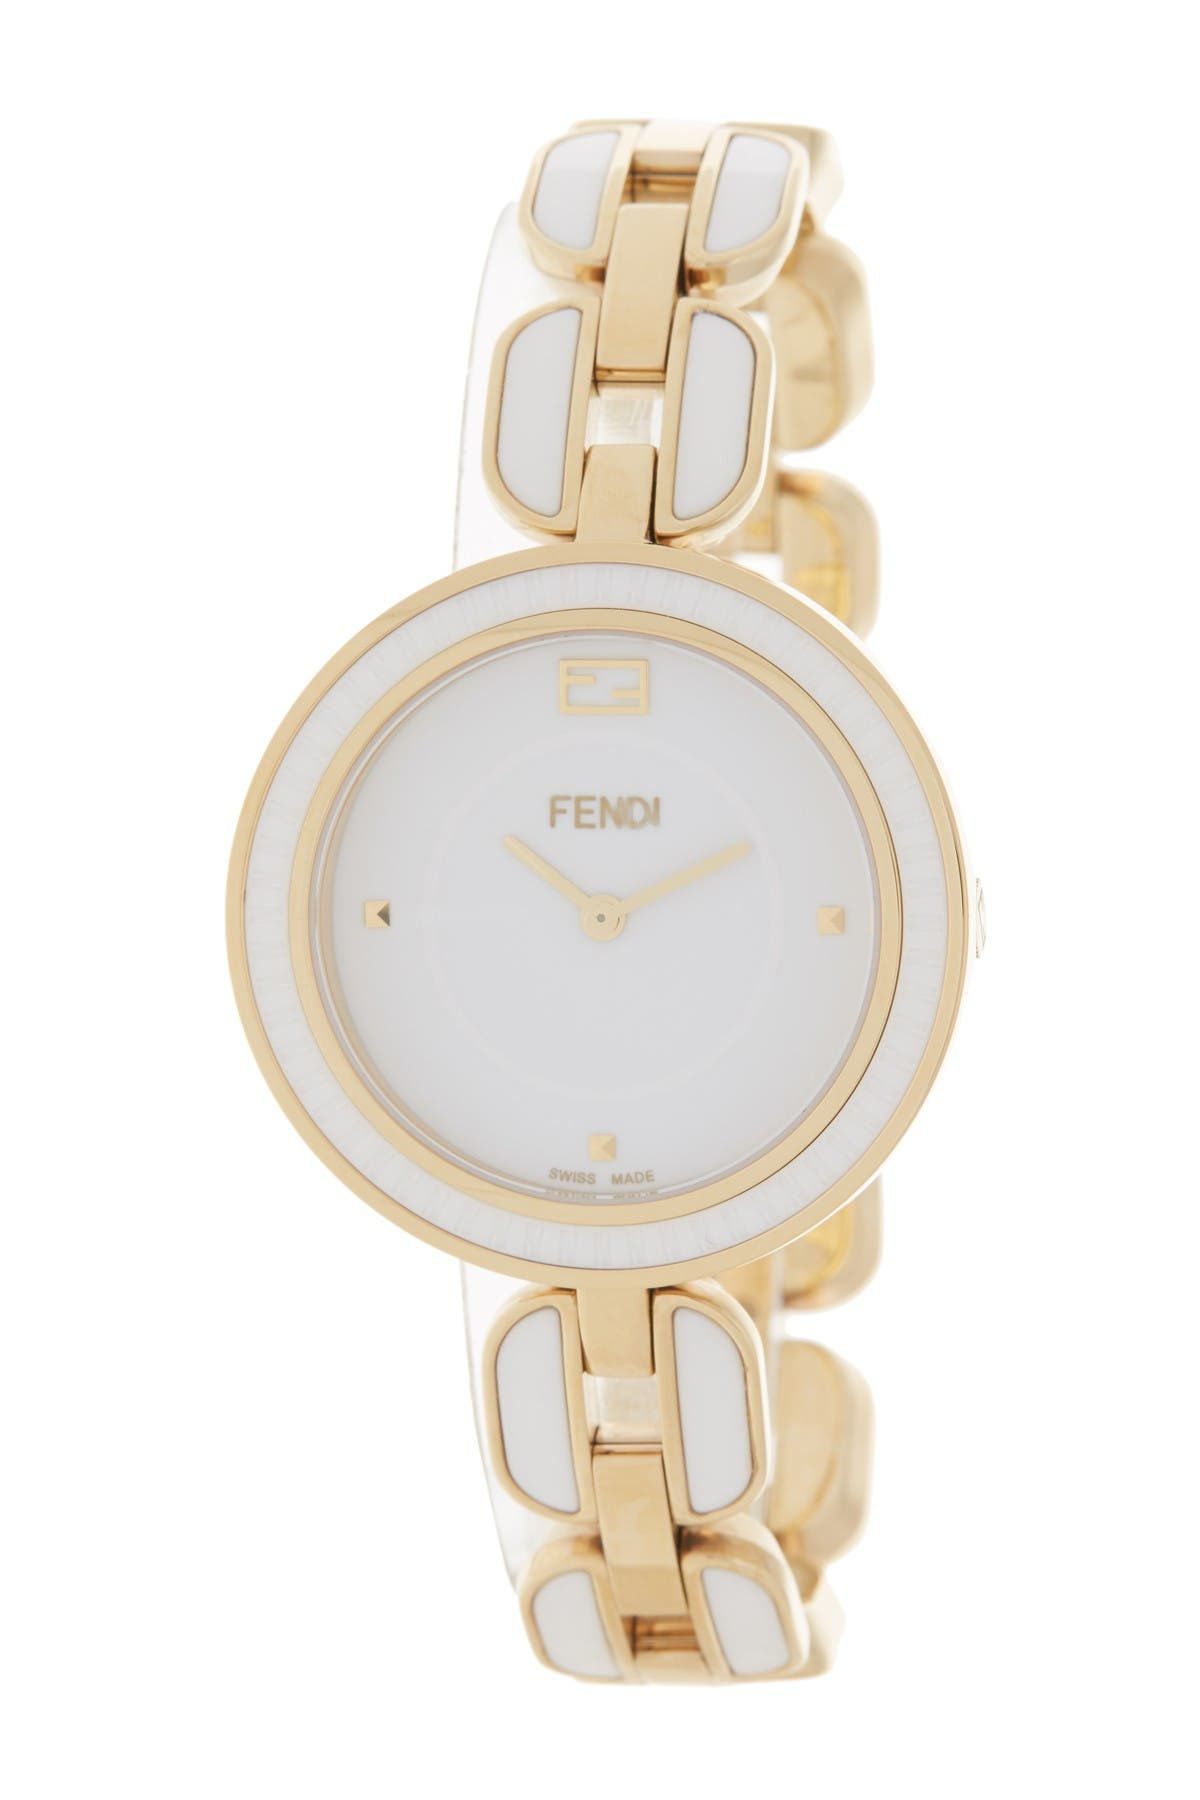 Image of FENDI Women's Matte Bracelet Watch, 36mm